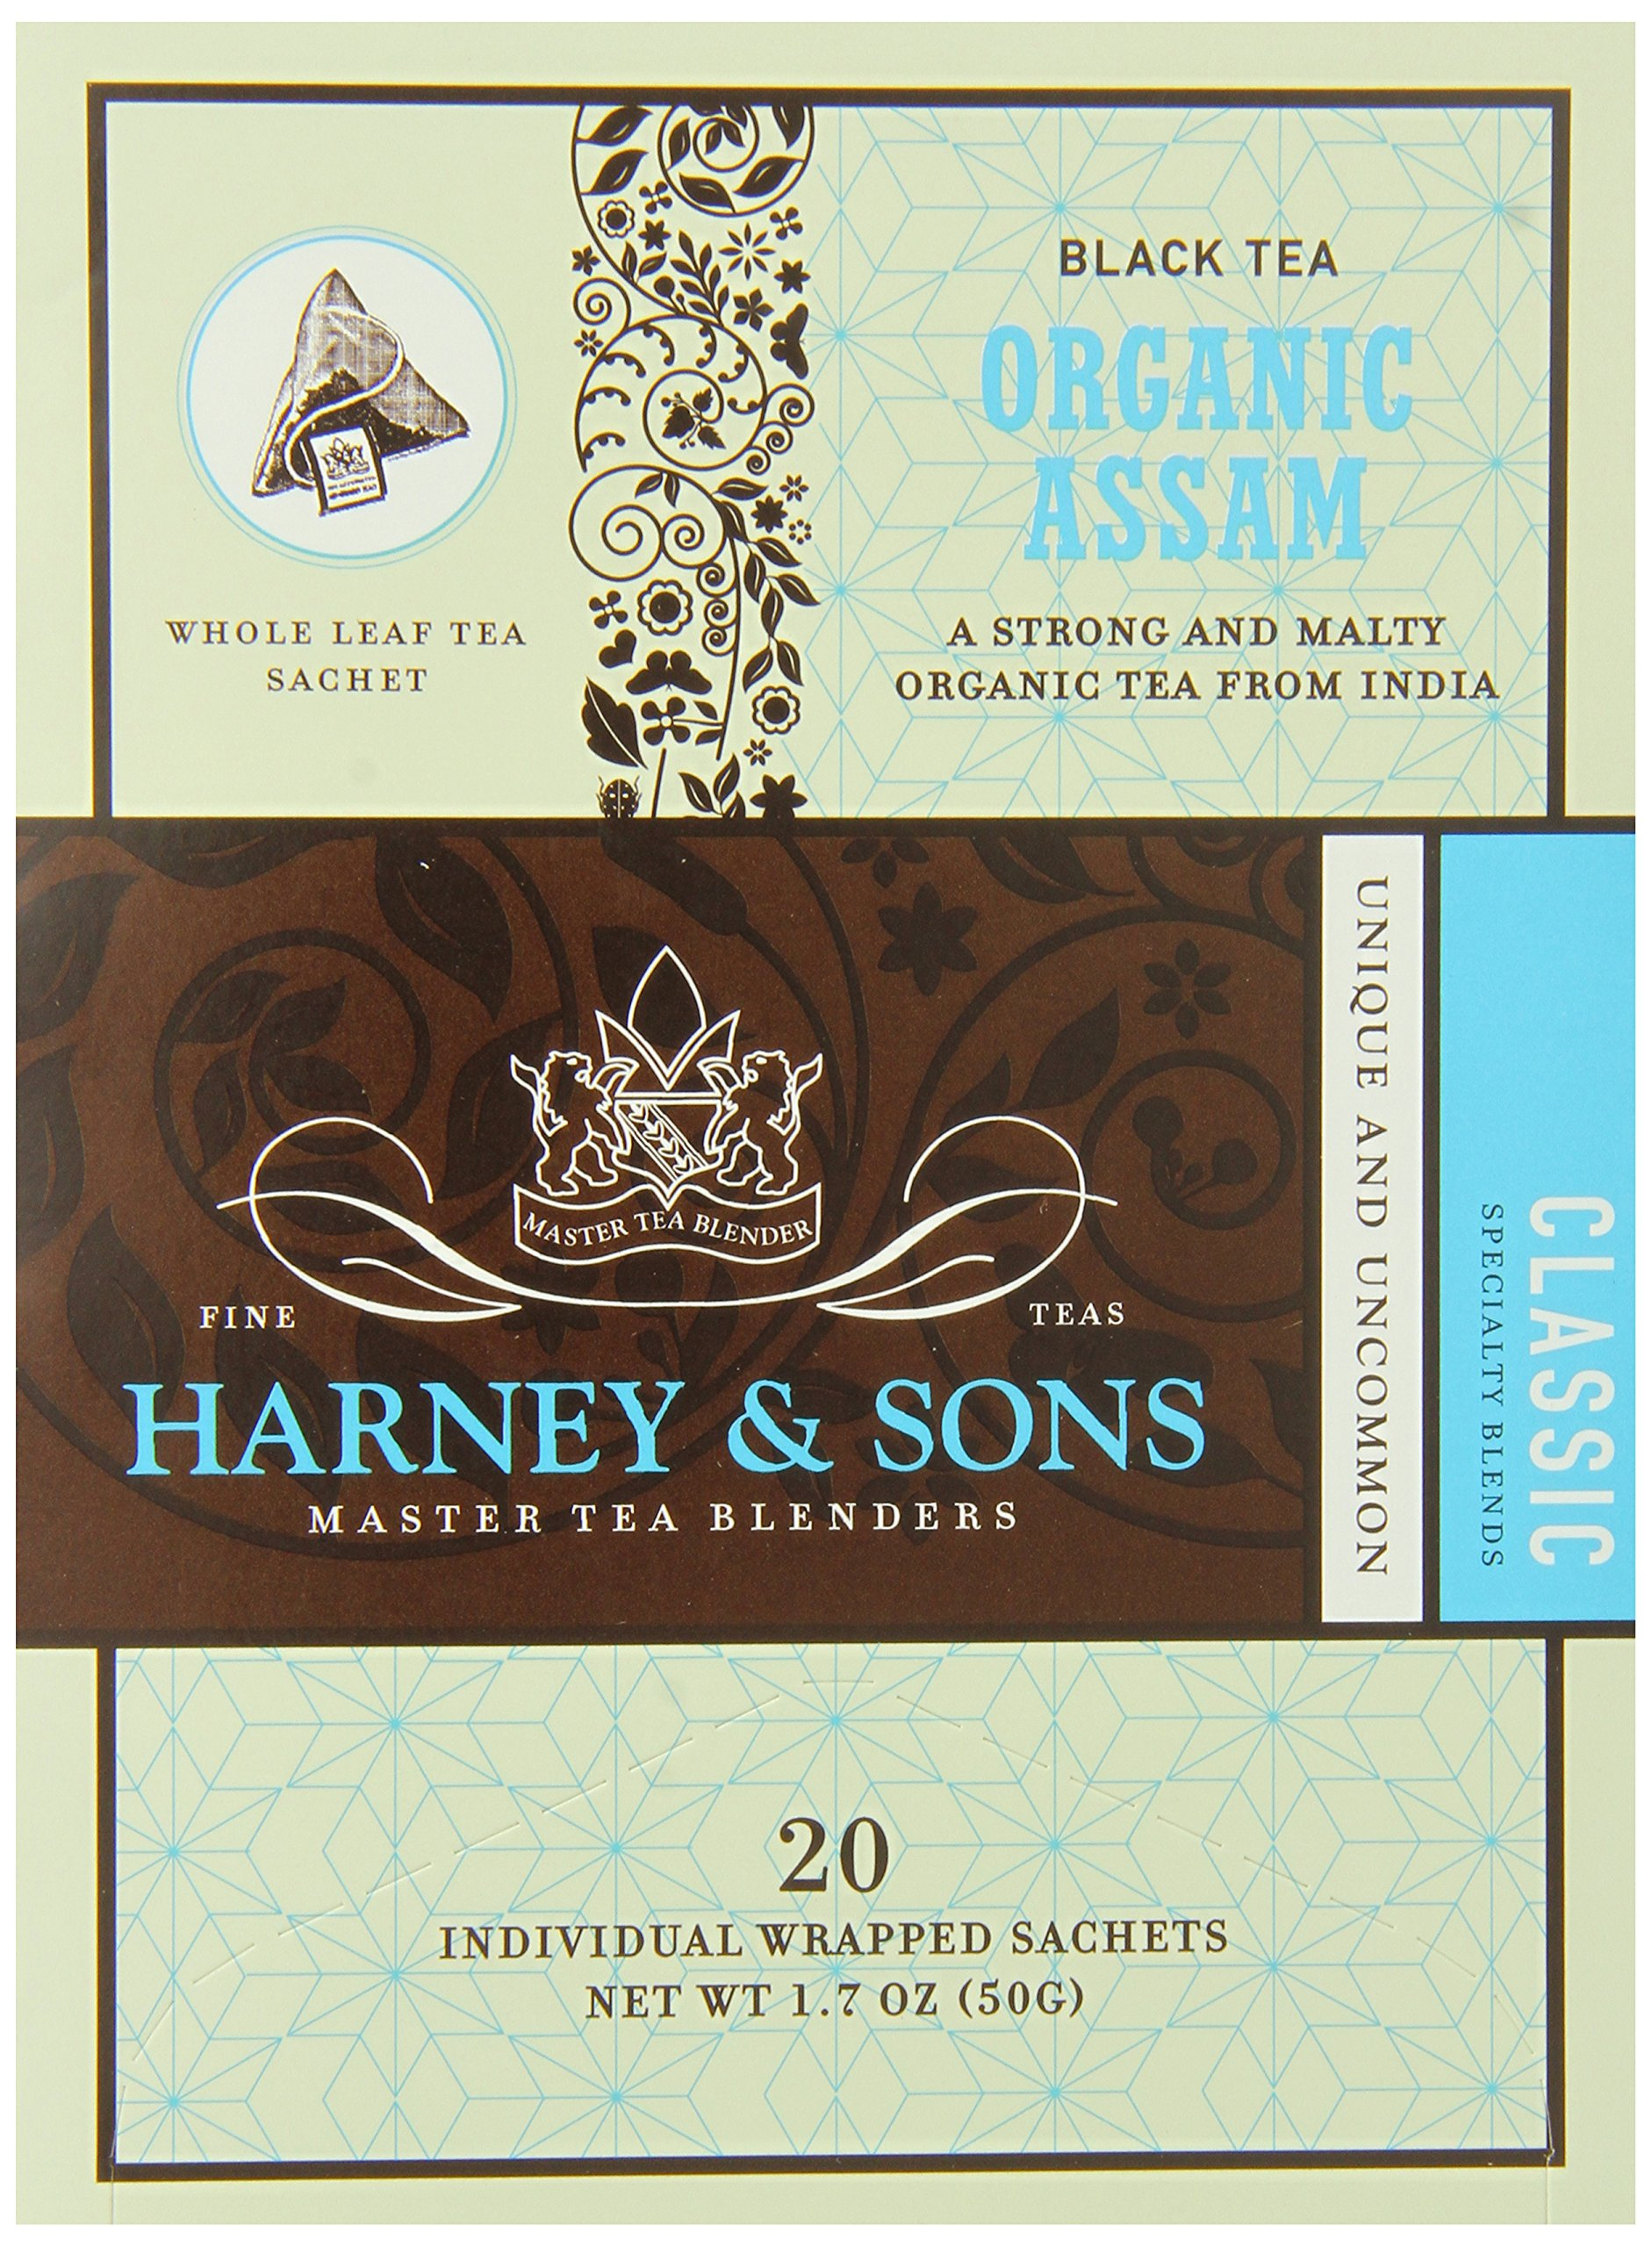 Harney & Sons Black Tea, Organic Assam, 1.7 oz, 20 Sachets (Pack of 6) by Harney & Sons